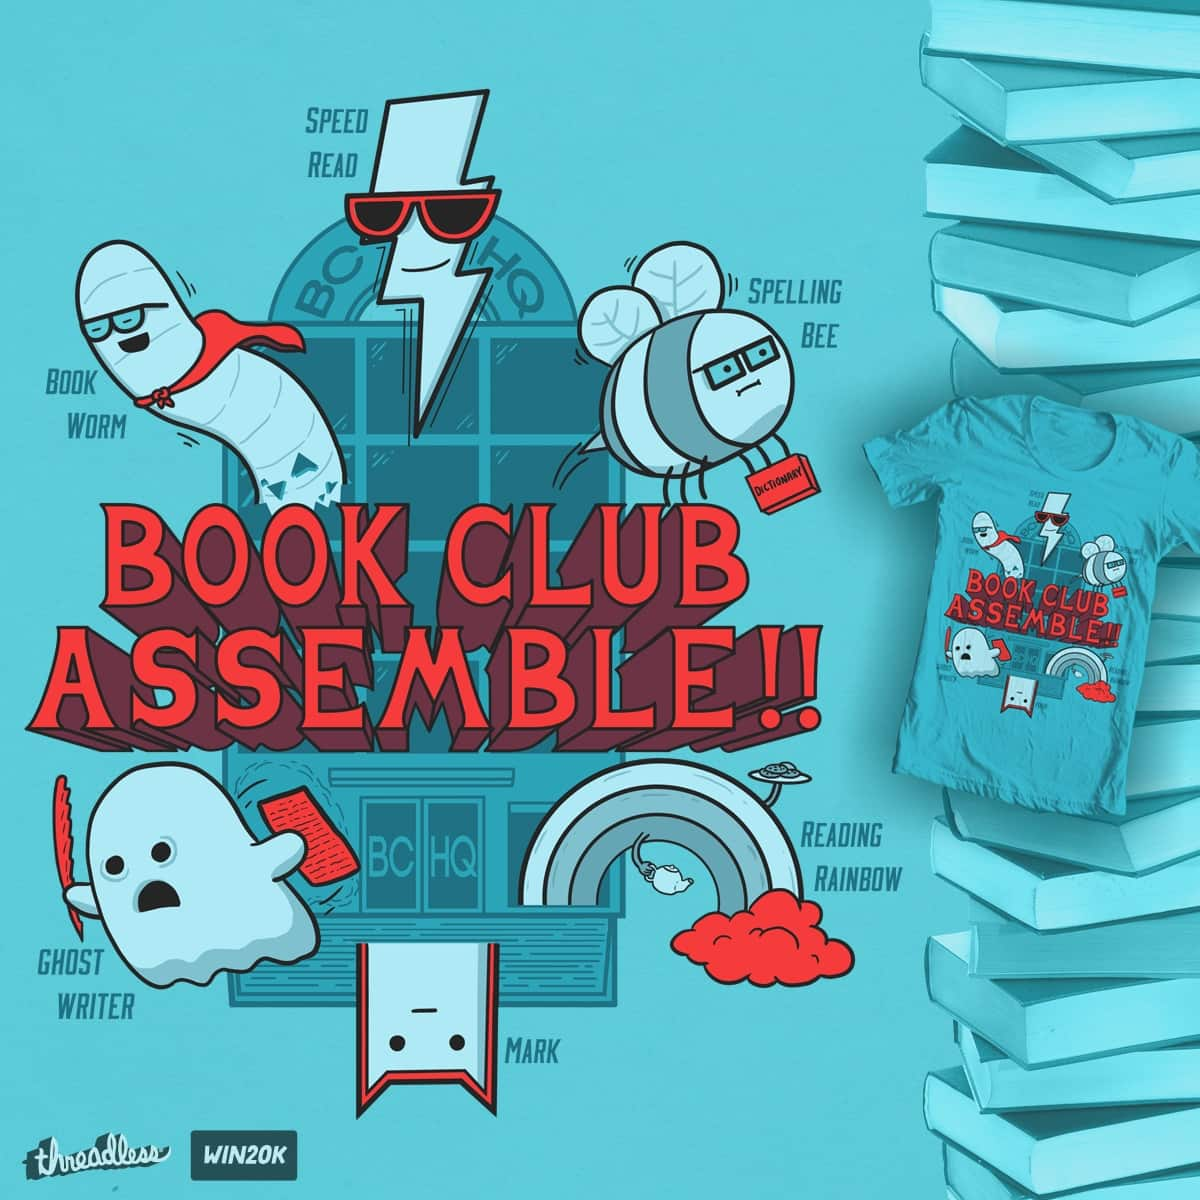 By The Power Of Literature! by FRICKINAWESOME and P0ckets on Threadless